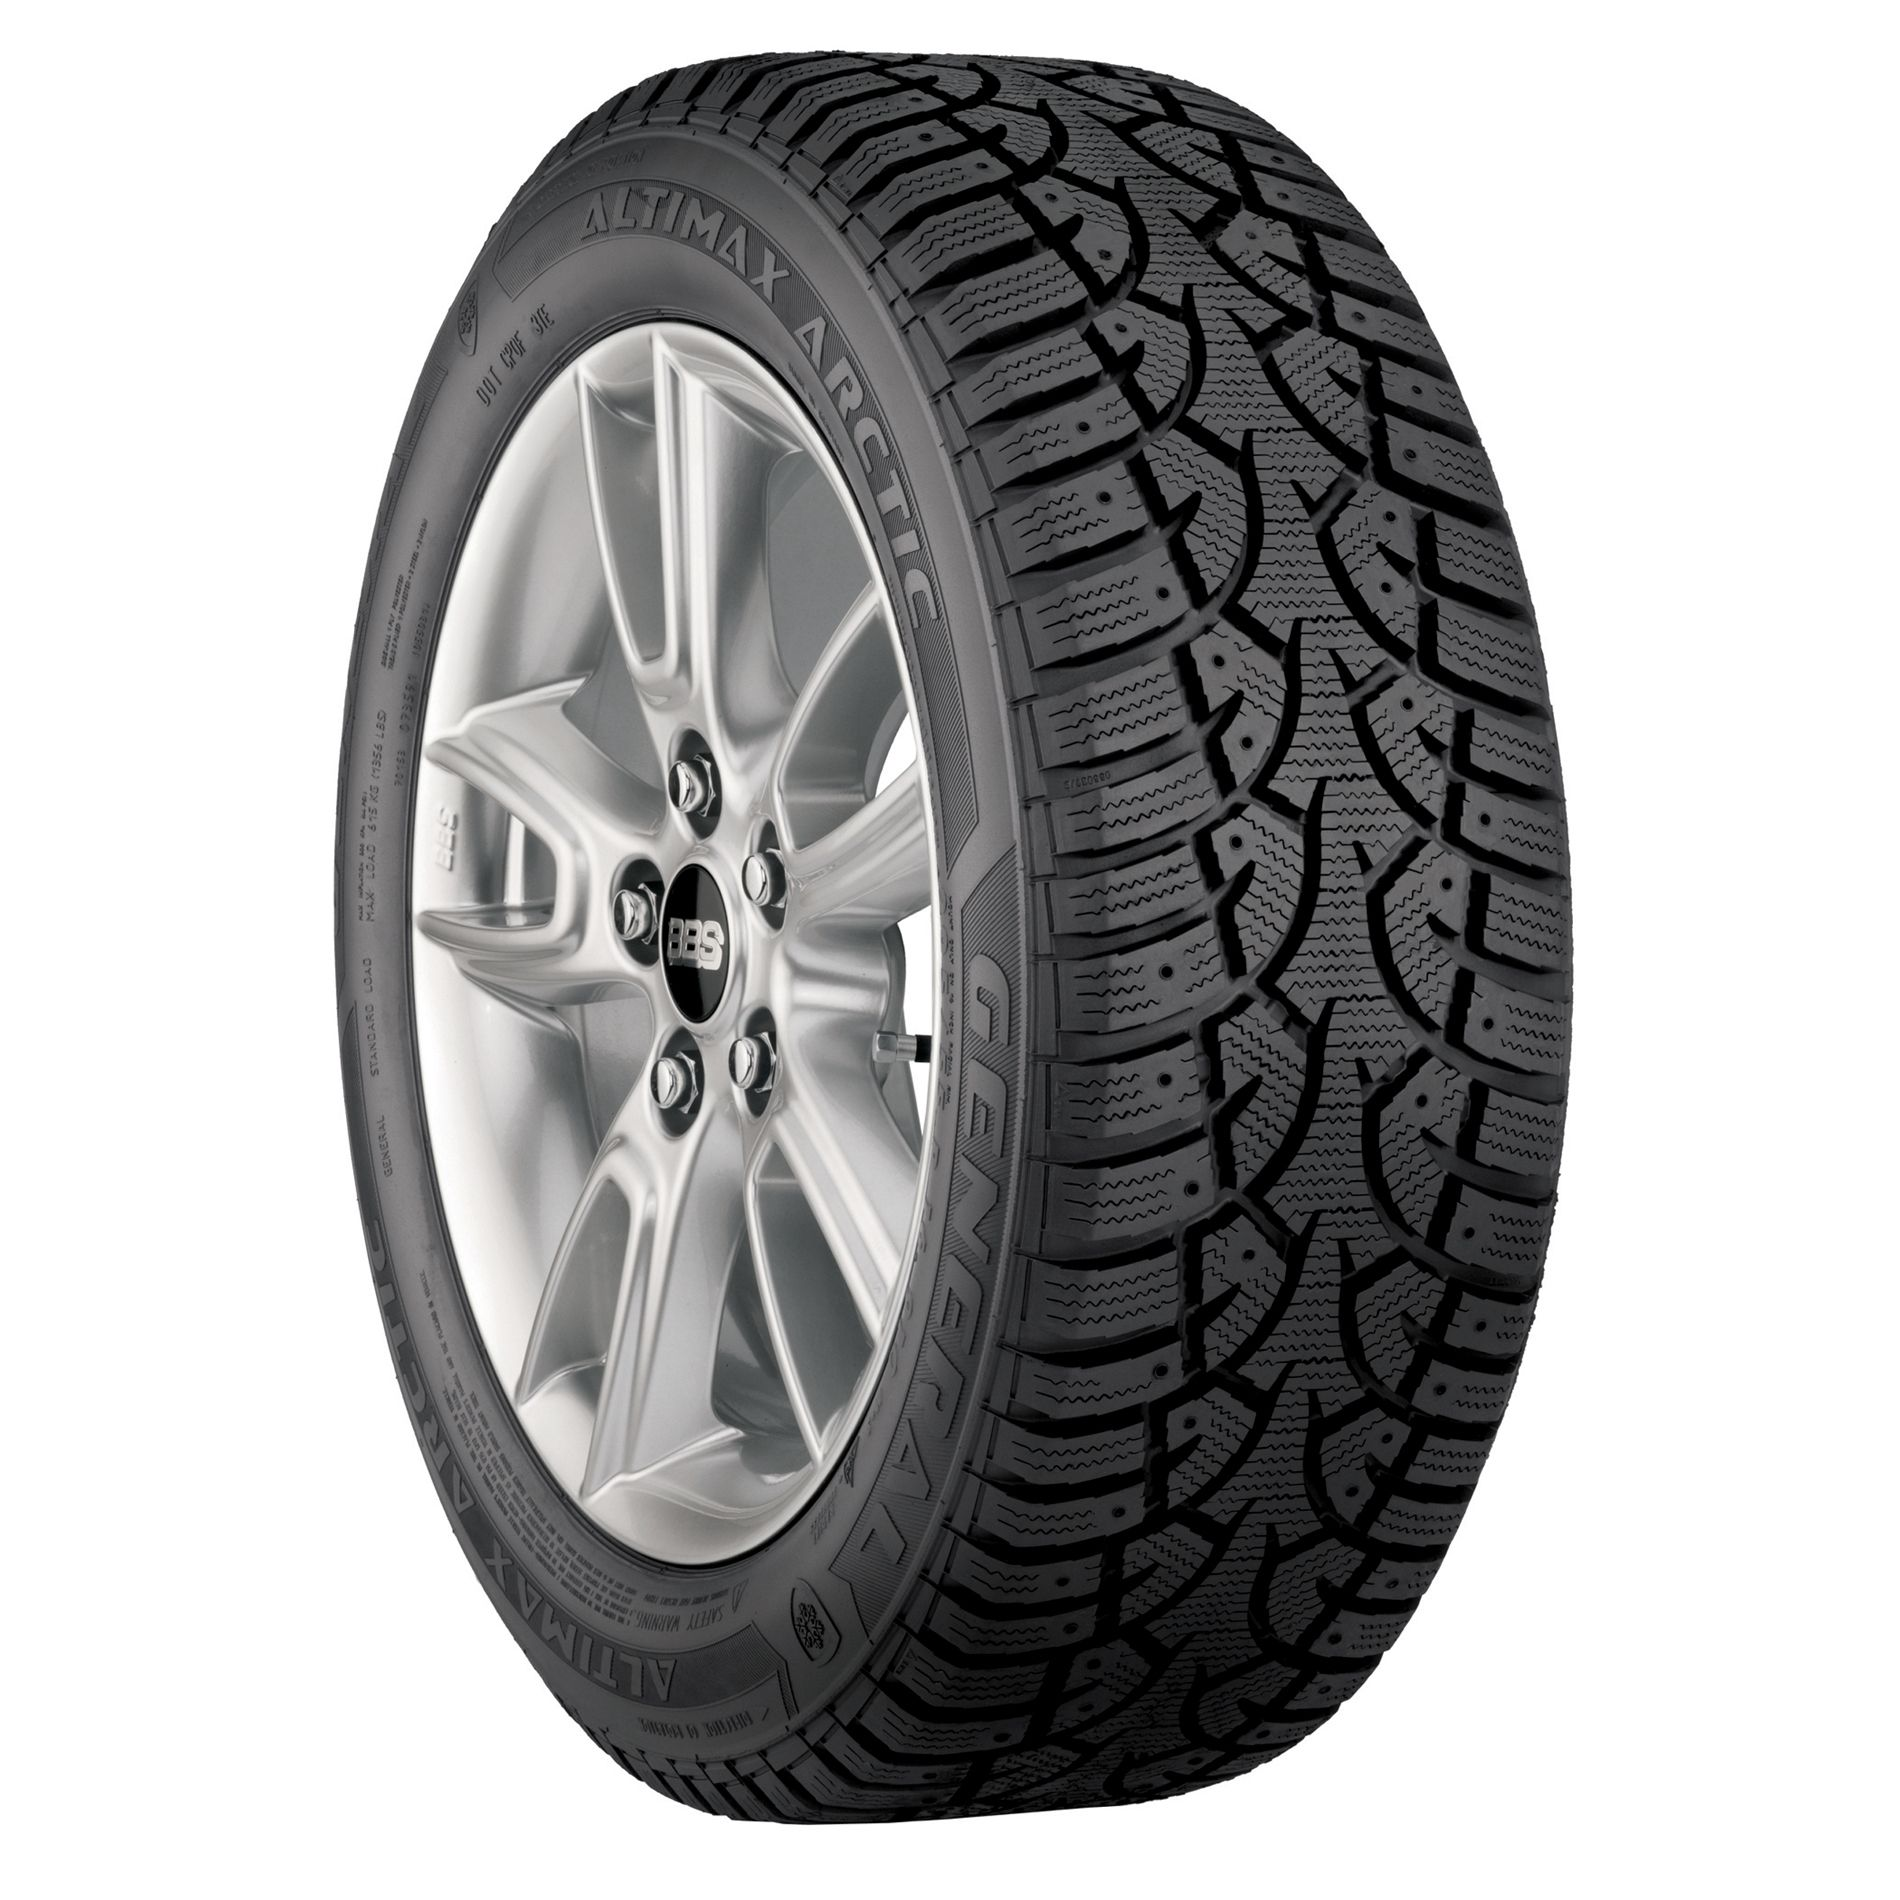 Altimax Arctic - 245/70R16 107Q BW - Winter Tire